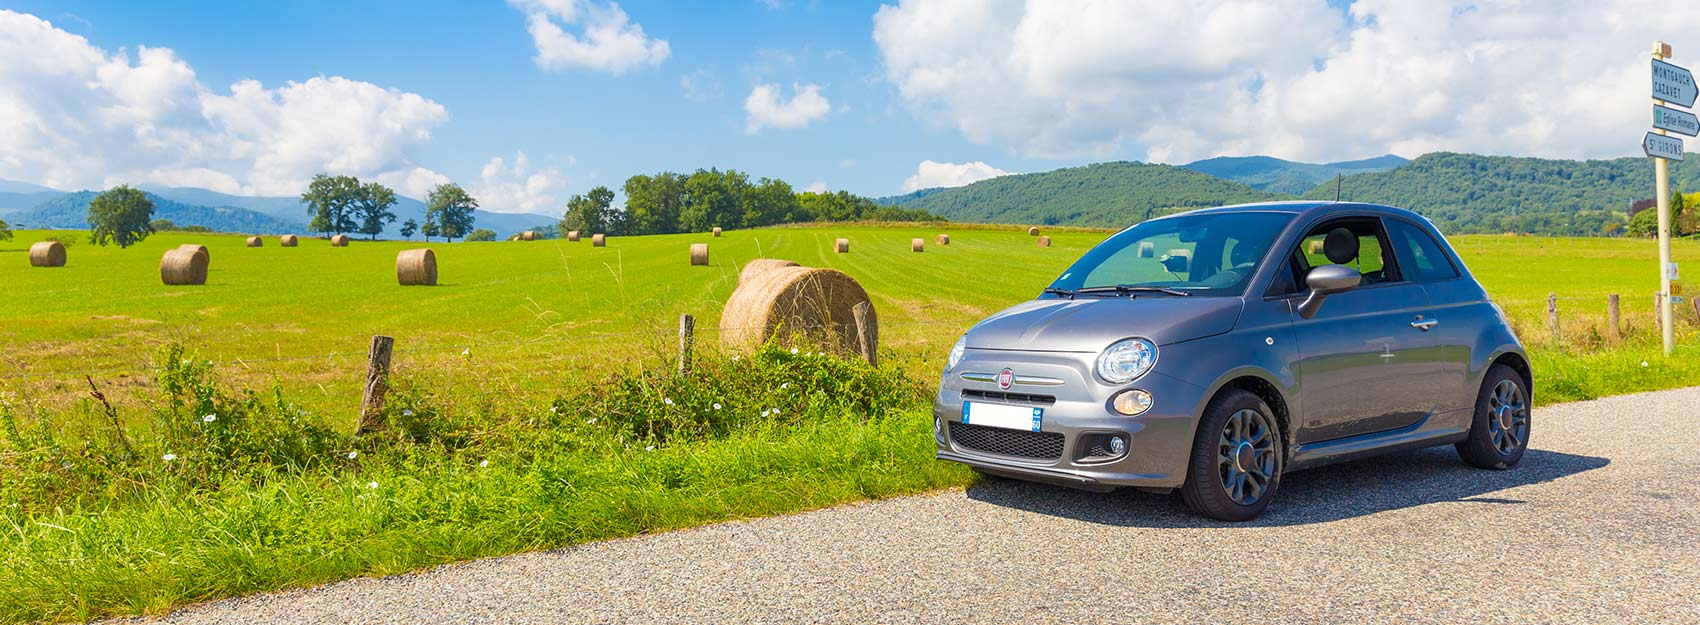 Fiat 500 used cars for sale, Colchester, Essex